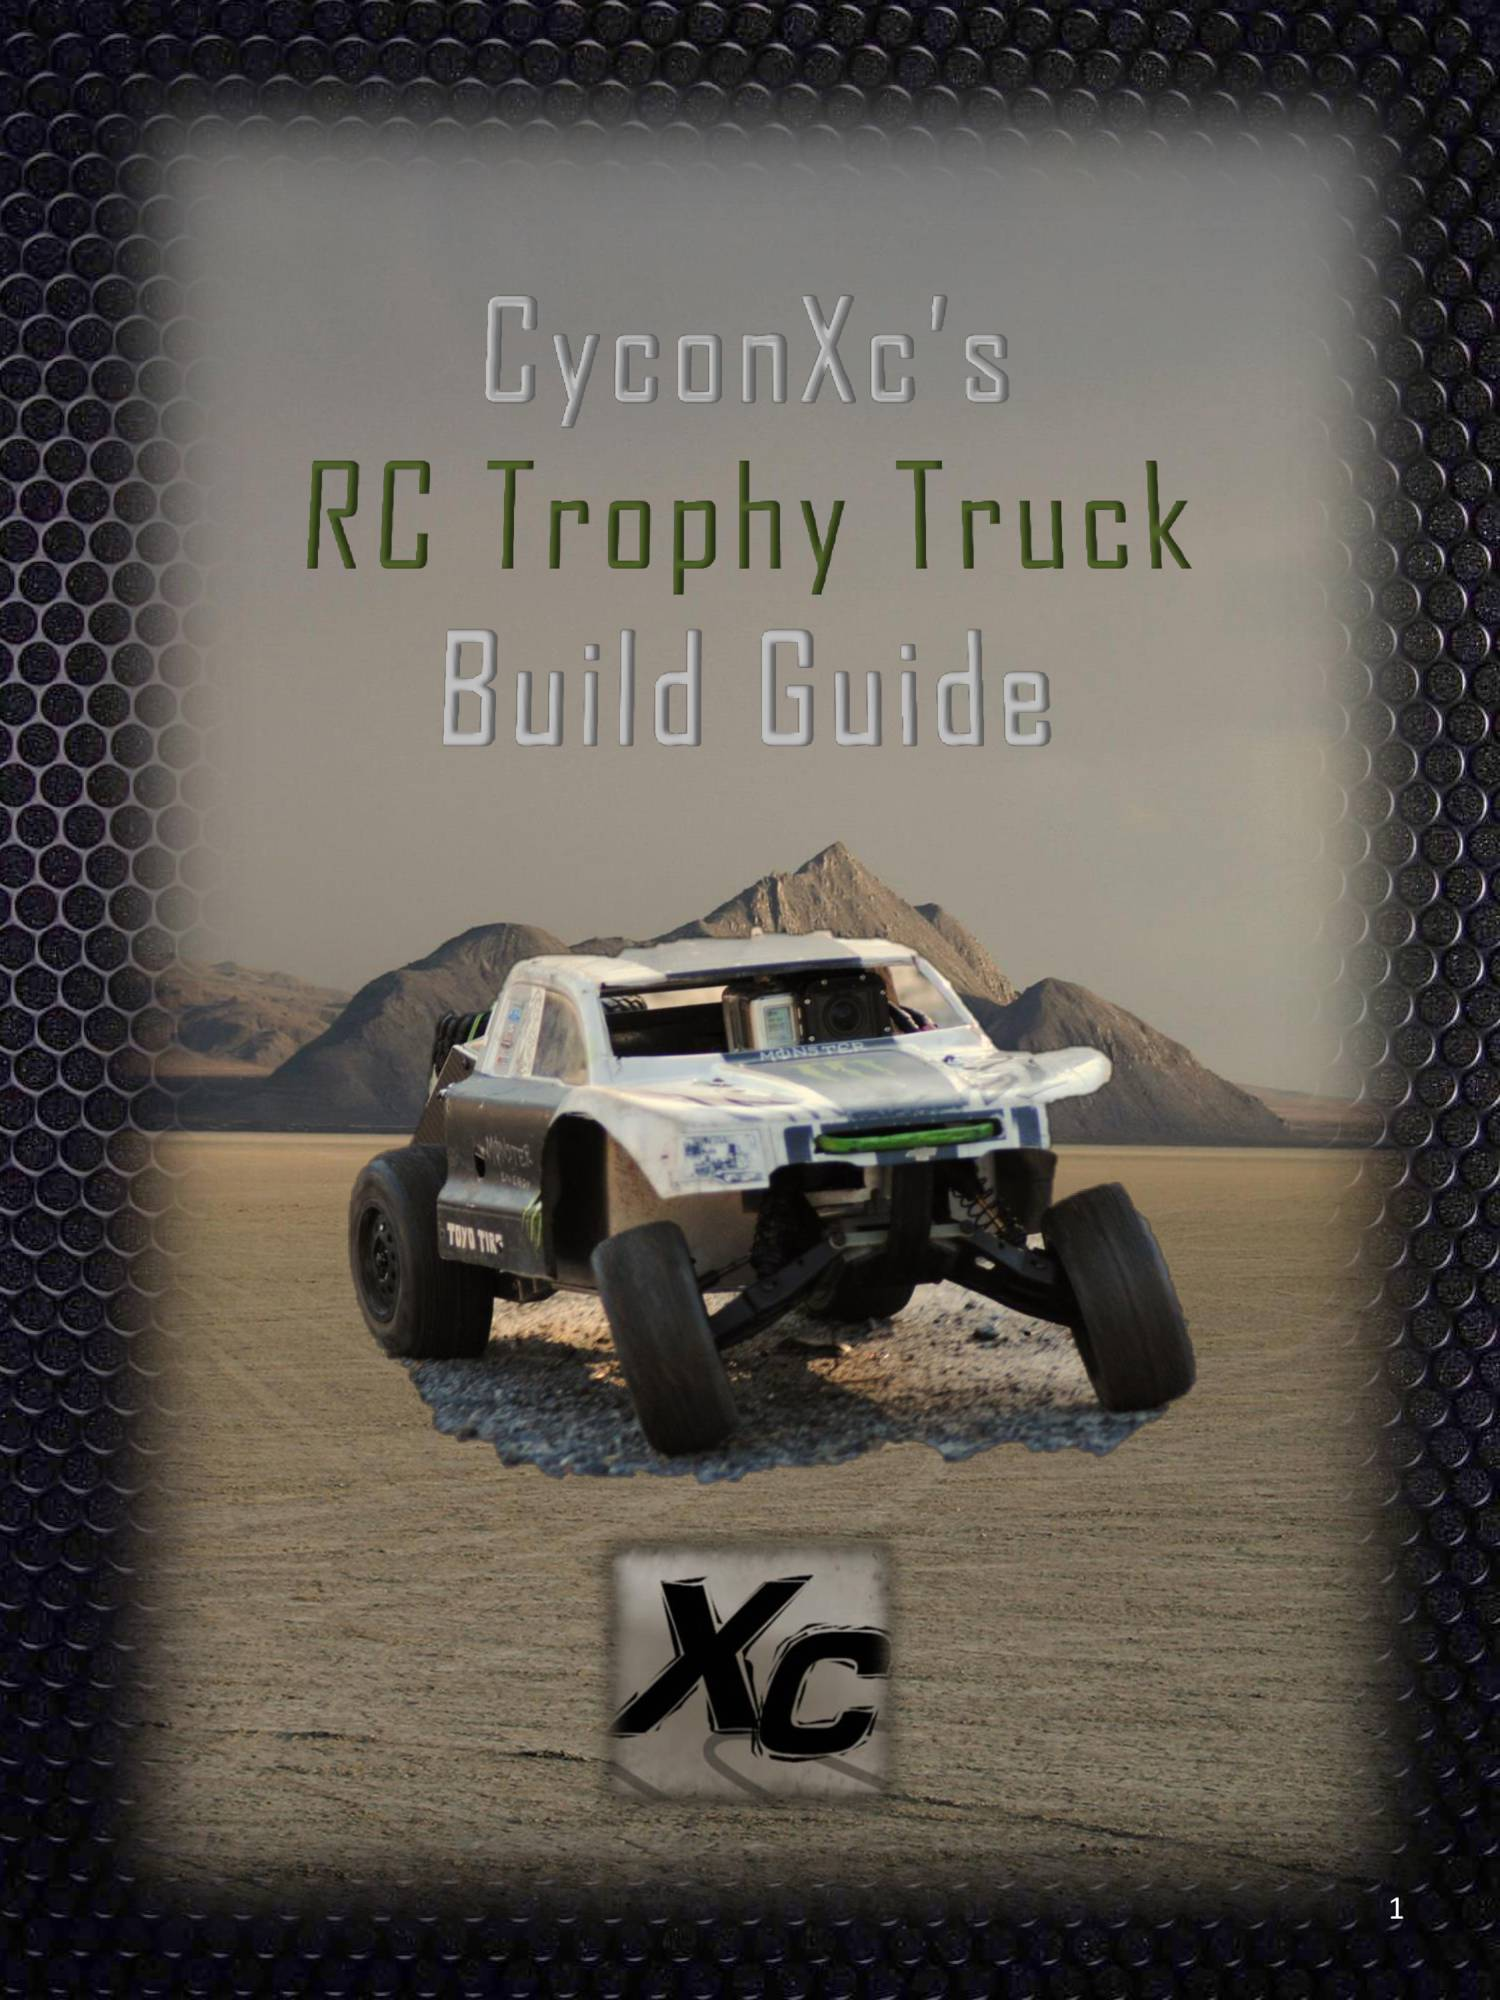 Build A Truck >> Cycon's Trophy Truck Build Guide PDF.pdf - DocDroid